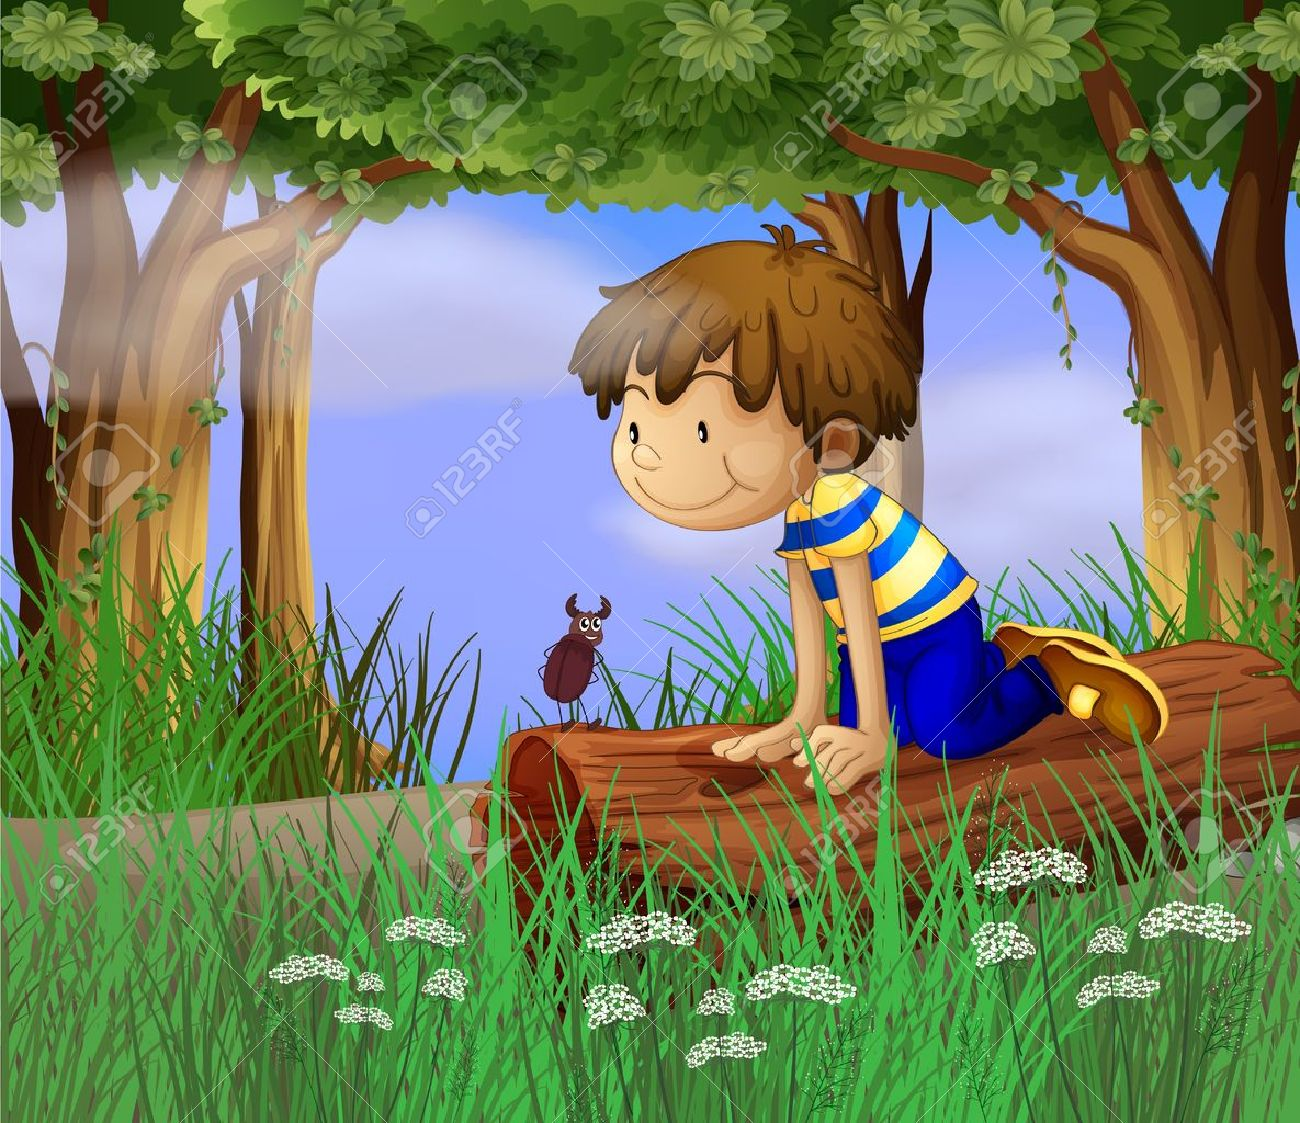 Illustration Of A Boy Watching An Insect Royalty Free Cliparts.